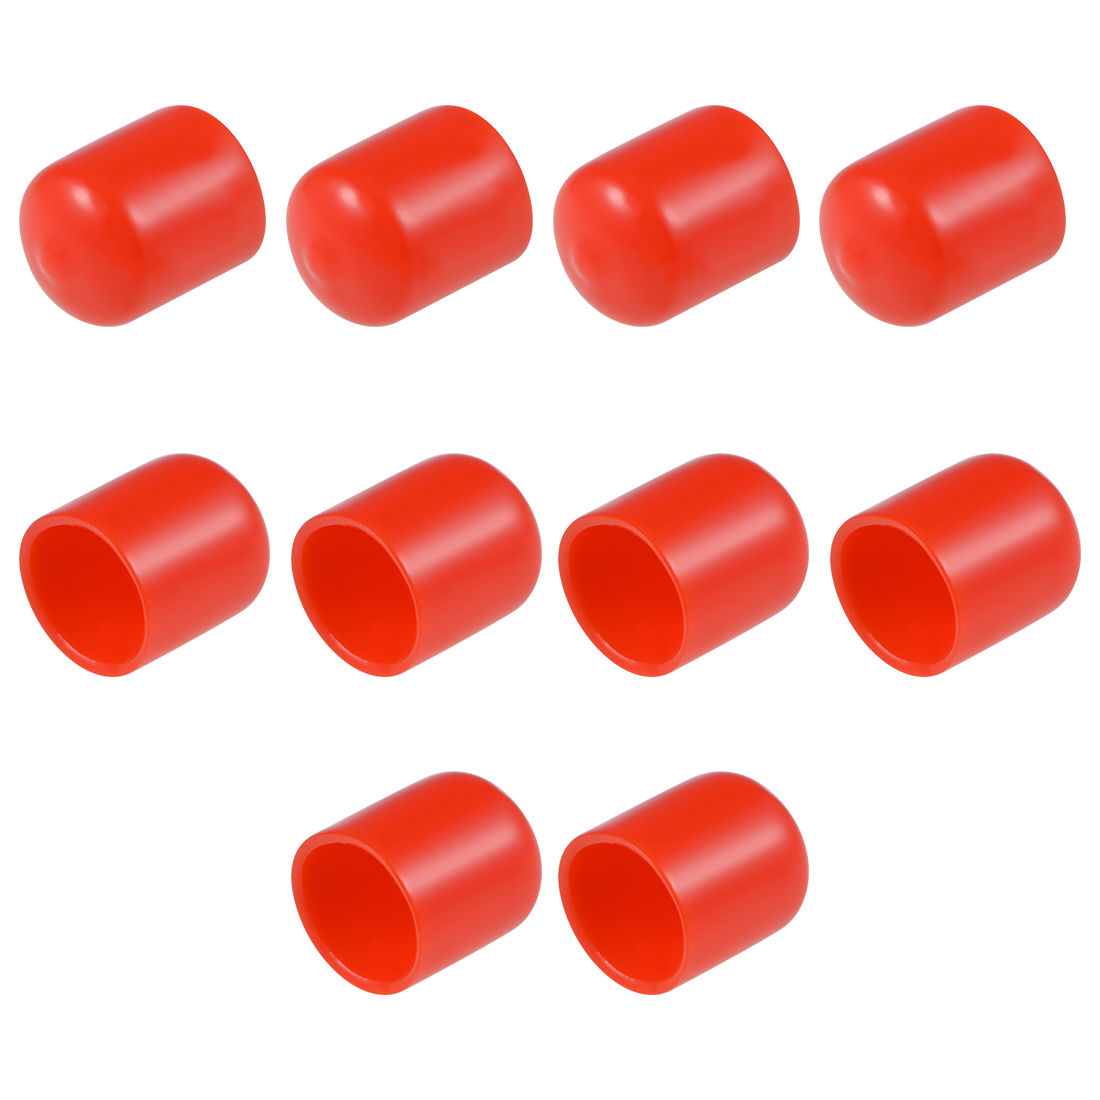 Screw Thread Protector, 19mm ID Round End Cap Cover Red Tube Caps 10pcs